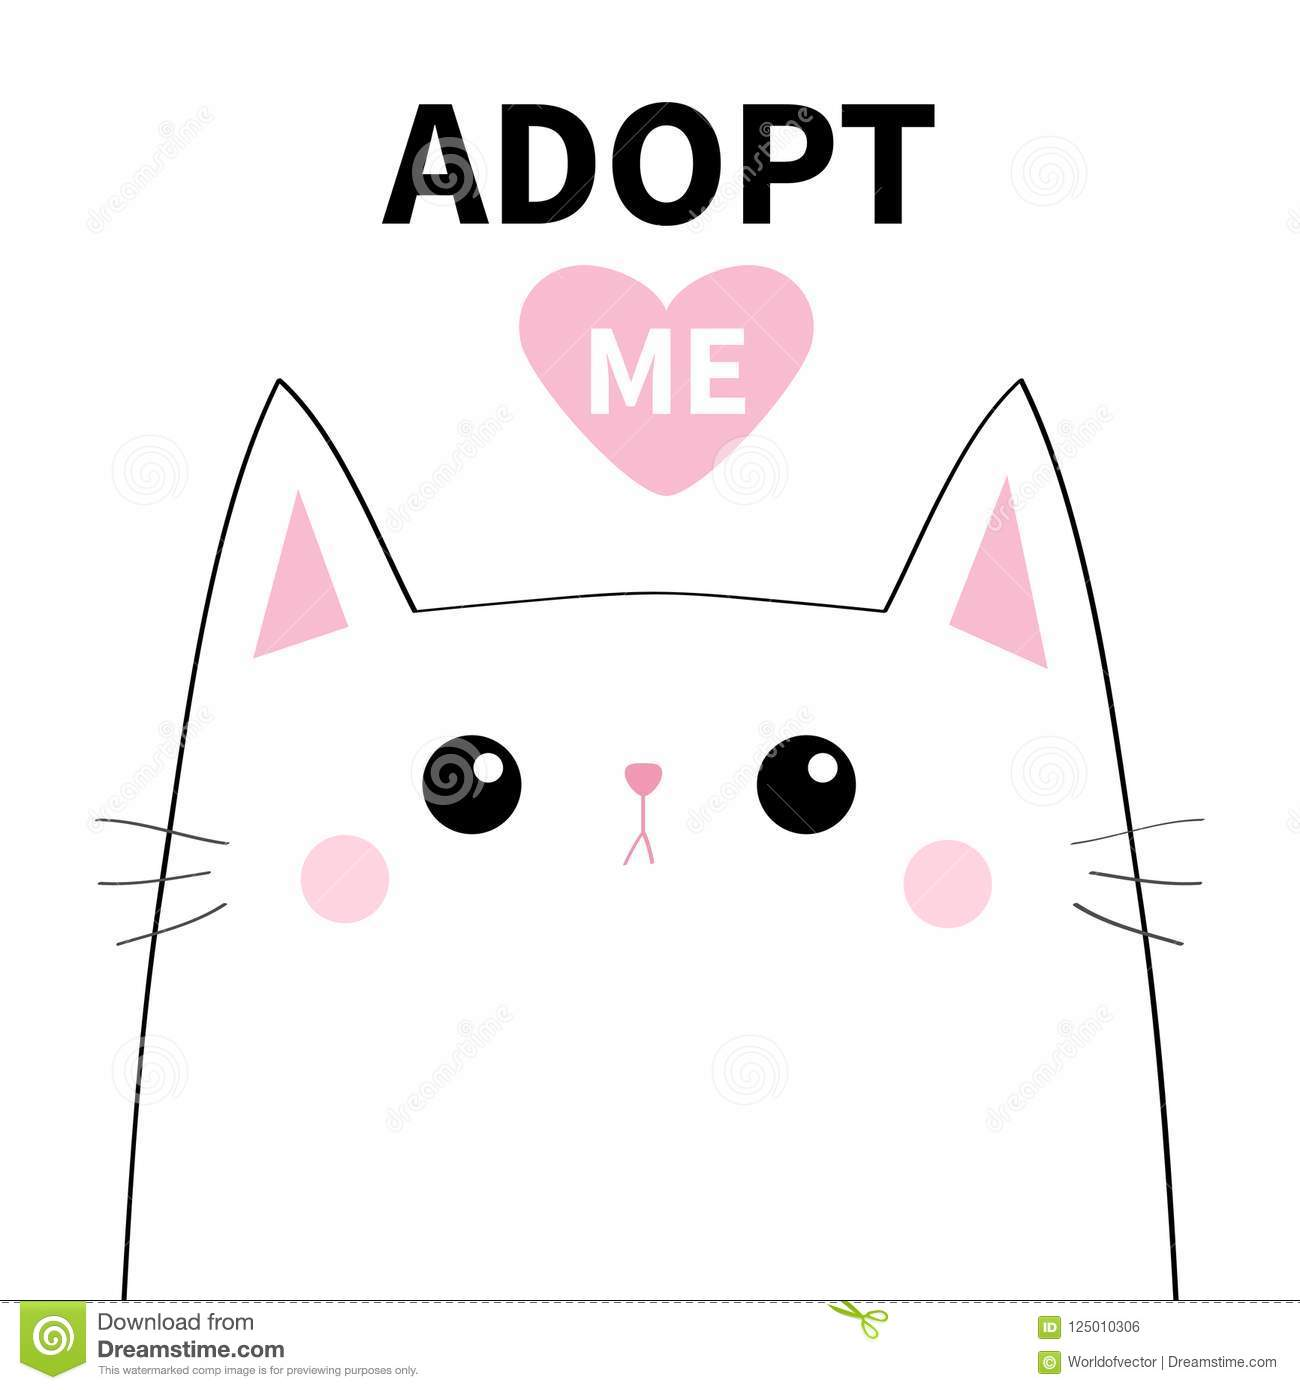 Adopt Me Dont Buy White Cat Sad Face Silhouette Pink Heart Pet Adoption Cute Cartoon Kitty Character Funny Baby Kitten Help Stock Vector Illustration Of Heart Cartoon 125010306